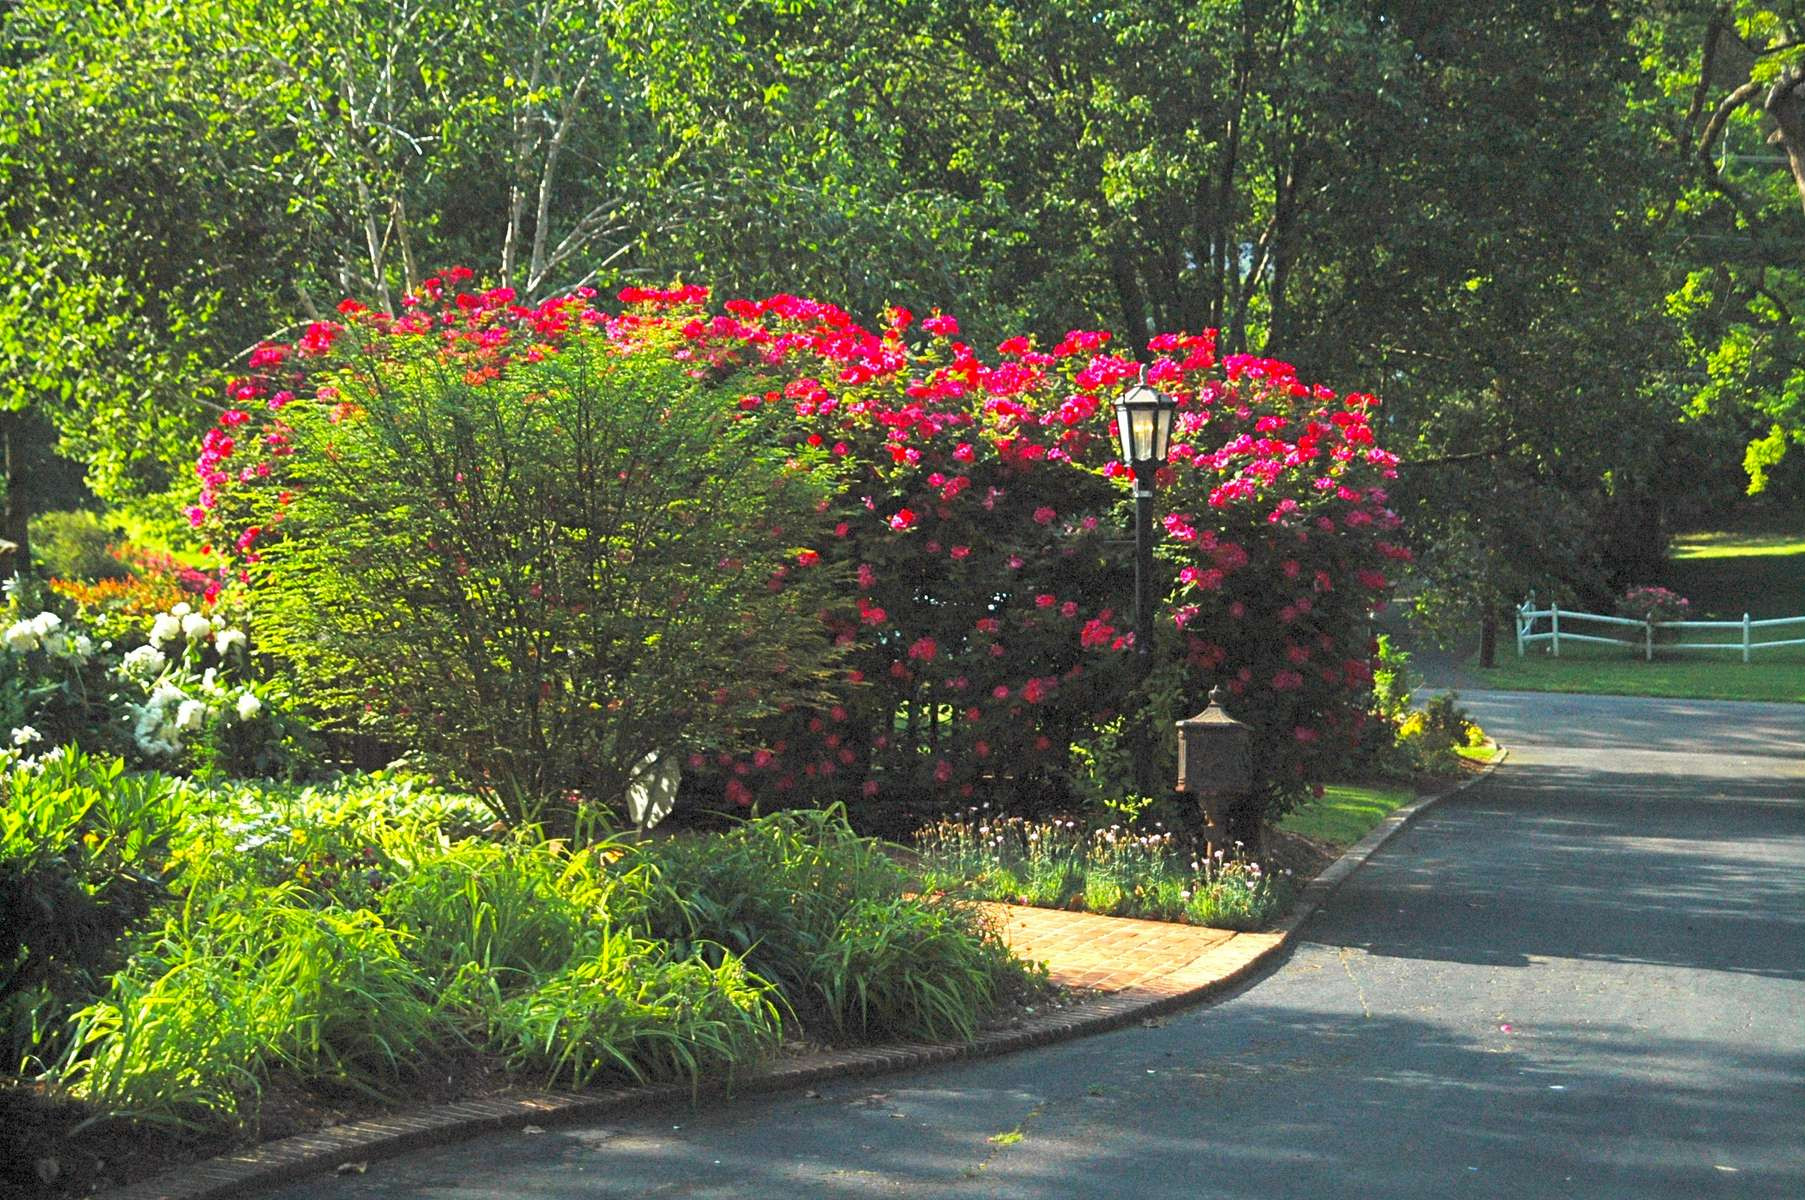 This landscape is even extraordinary from the street as bold introductions of Knockout roses make a lasting first impression.